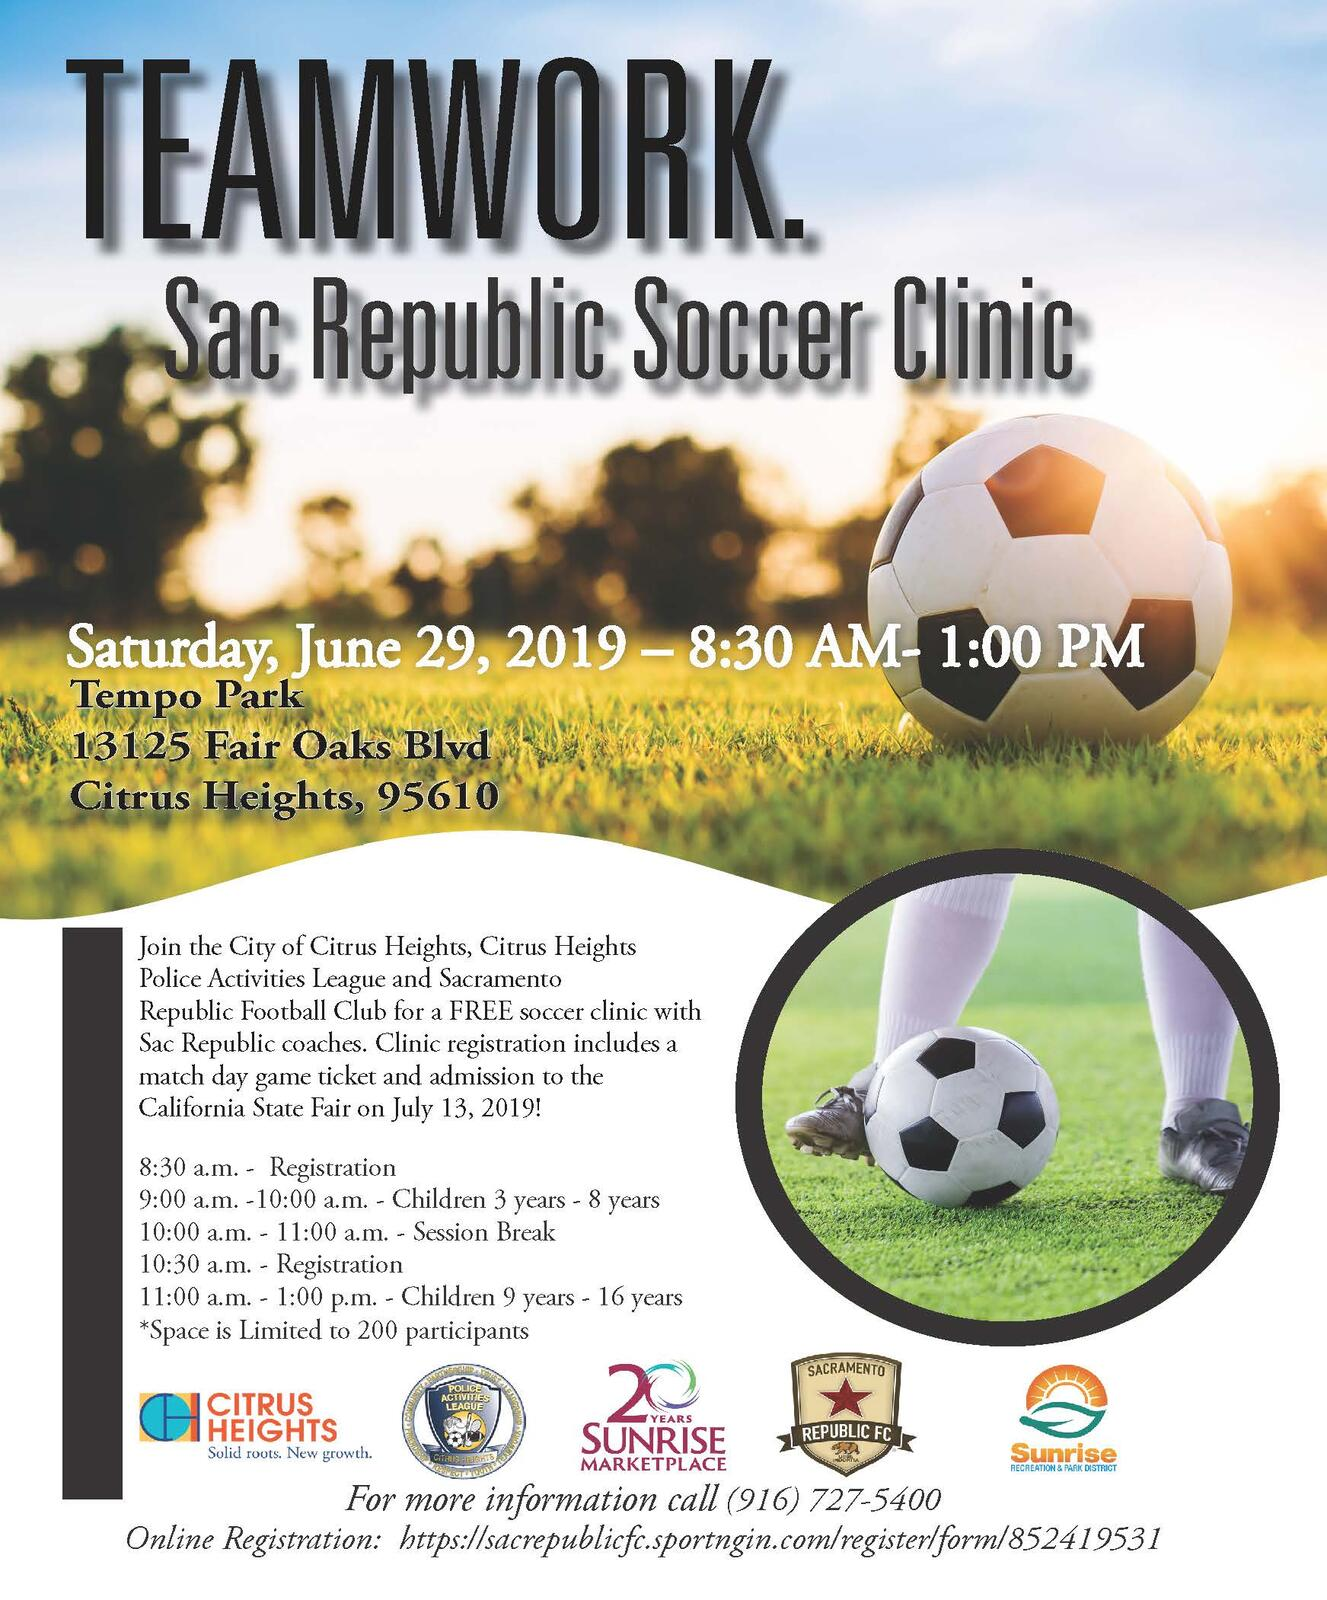 Sac Republic Soccer Clinic! (City of Citrus Heights) &mdash